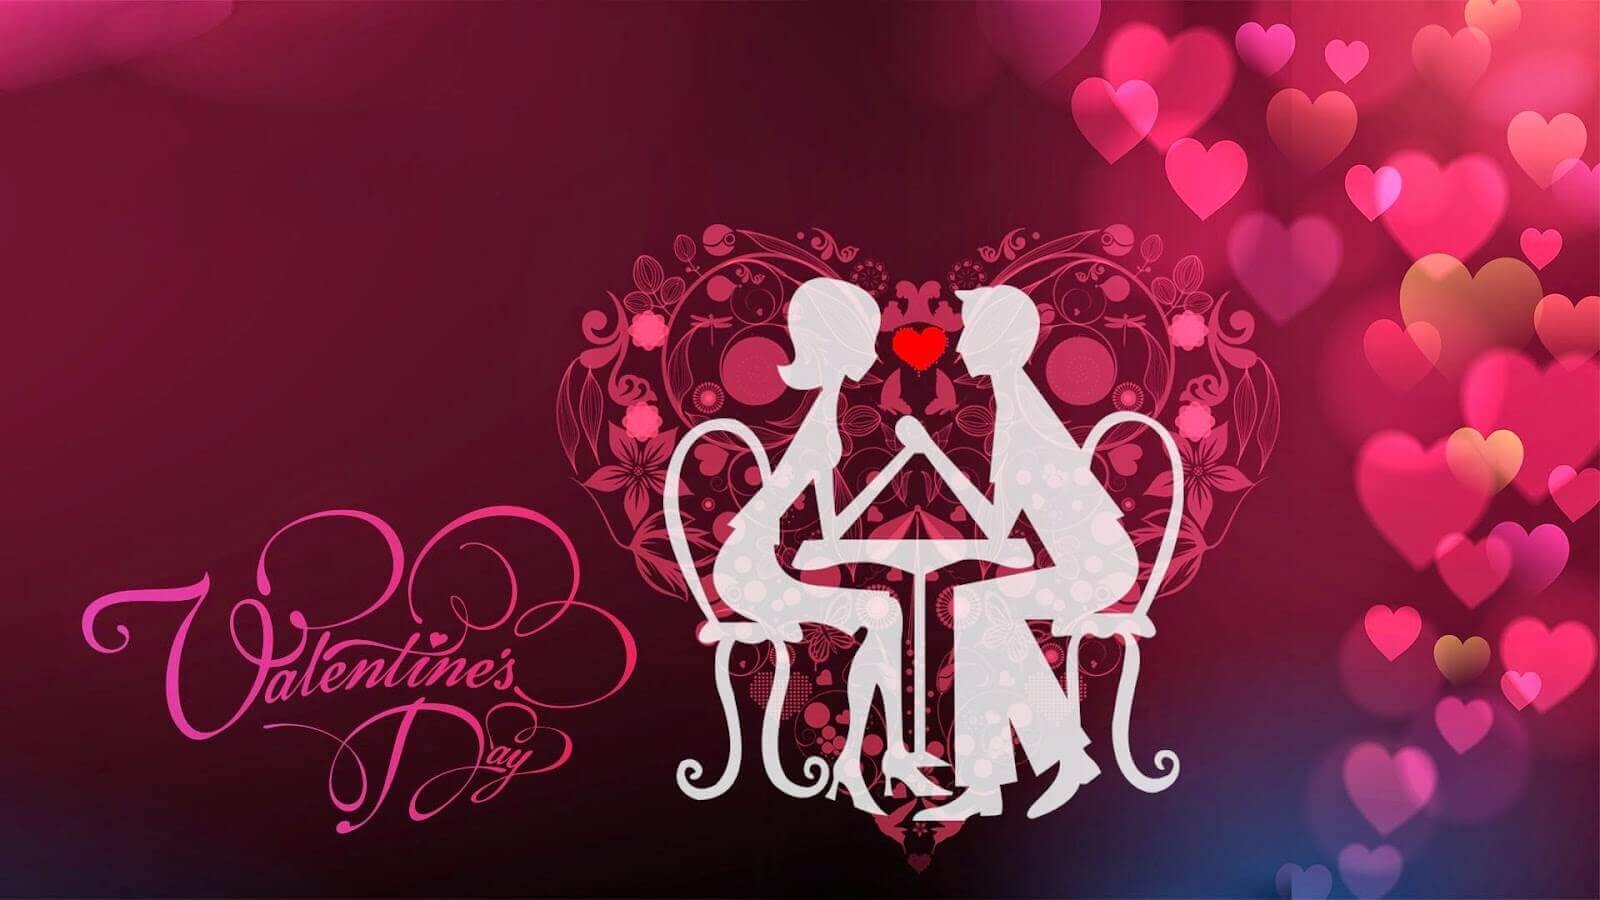 happy valentine day couple sitting romance love image photo hd wallpaper